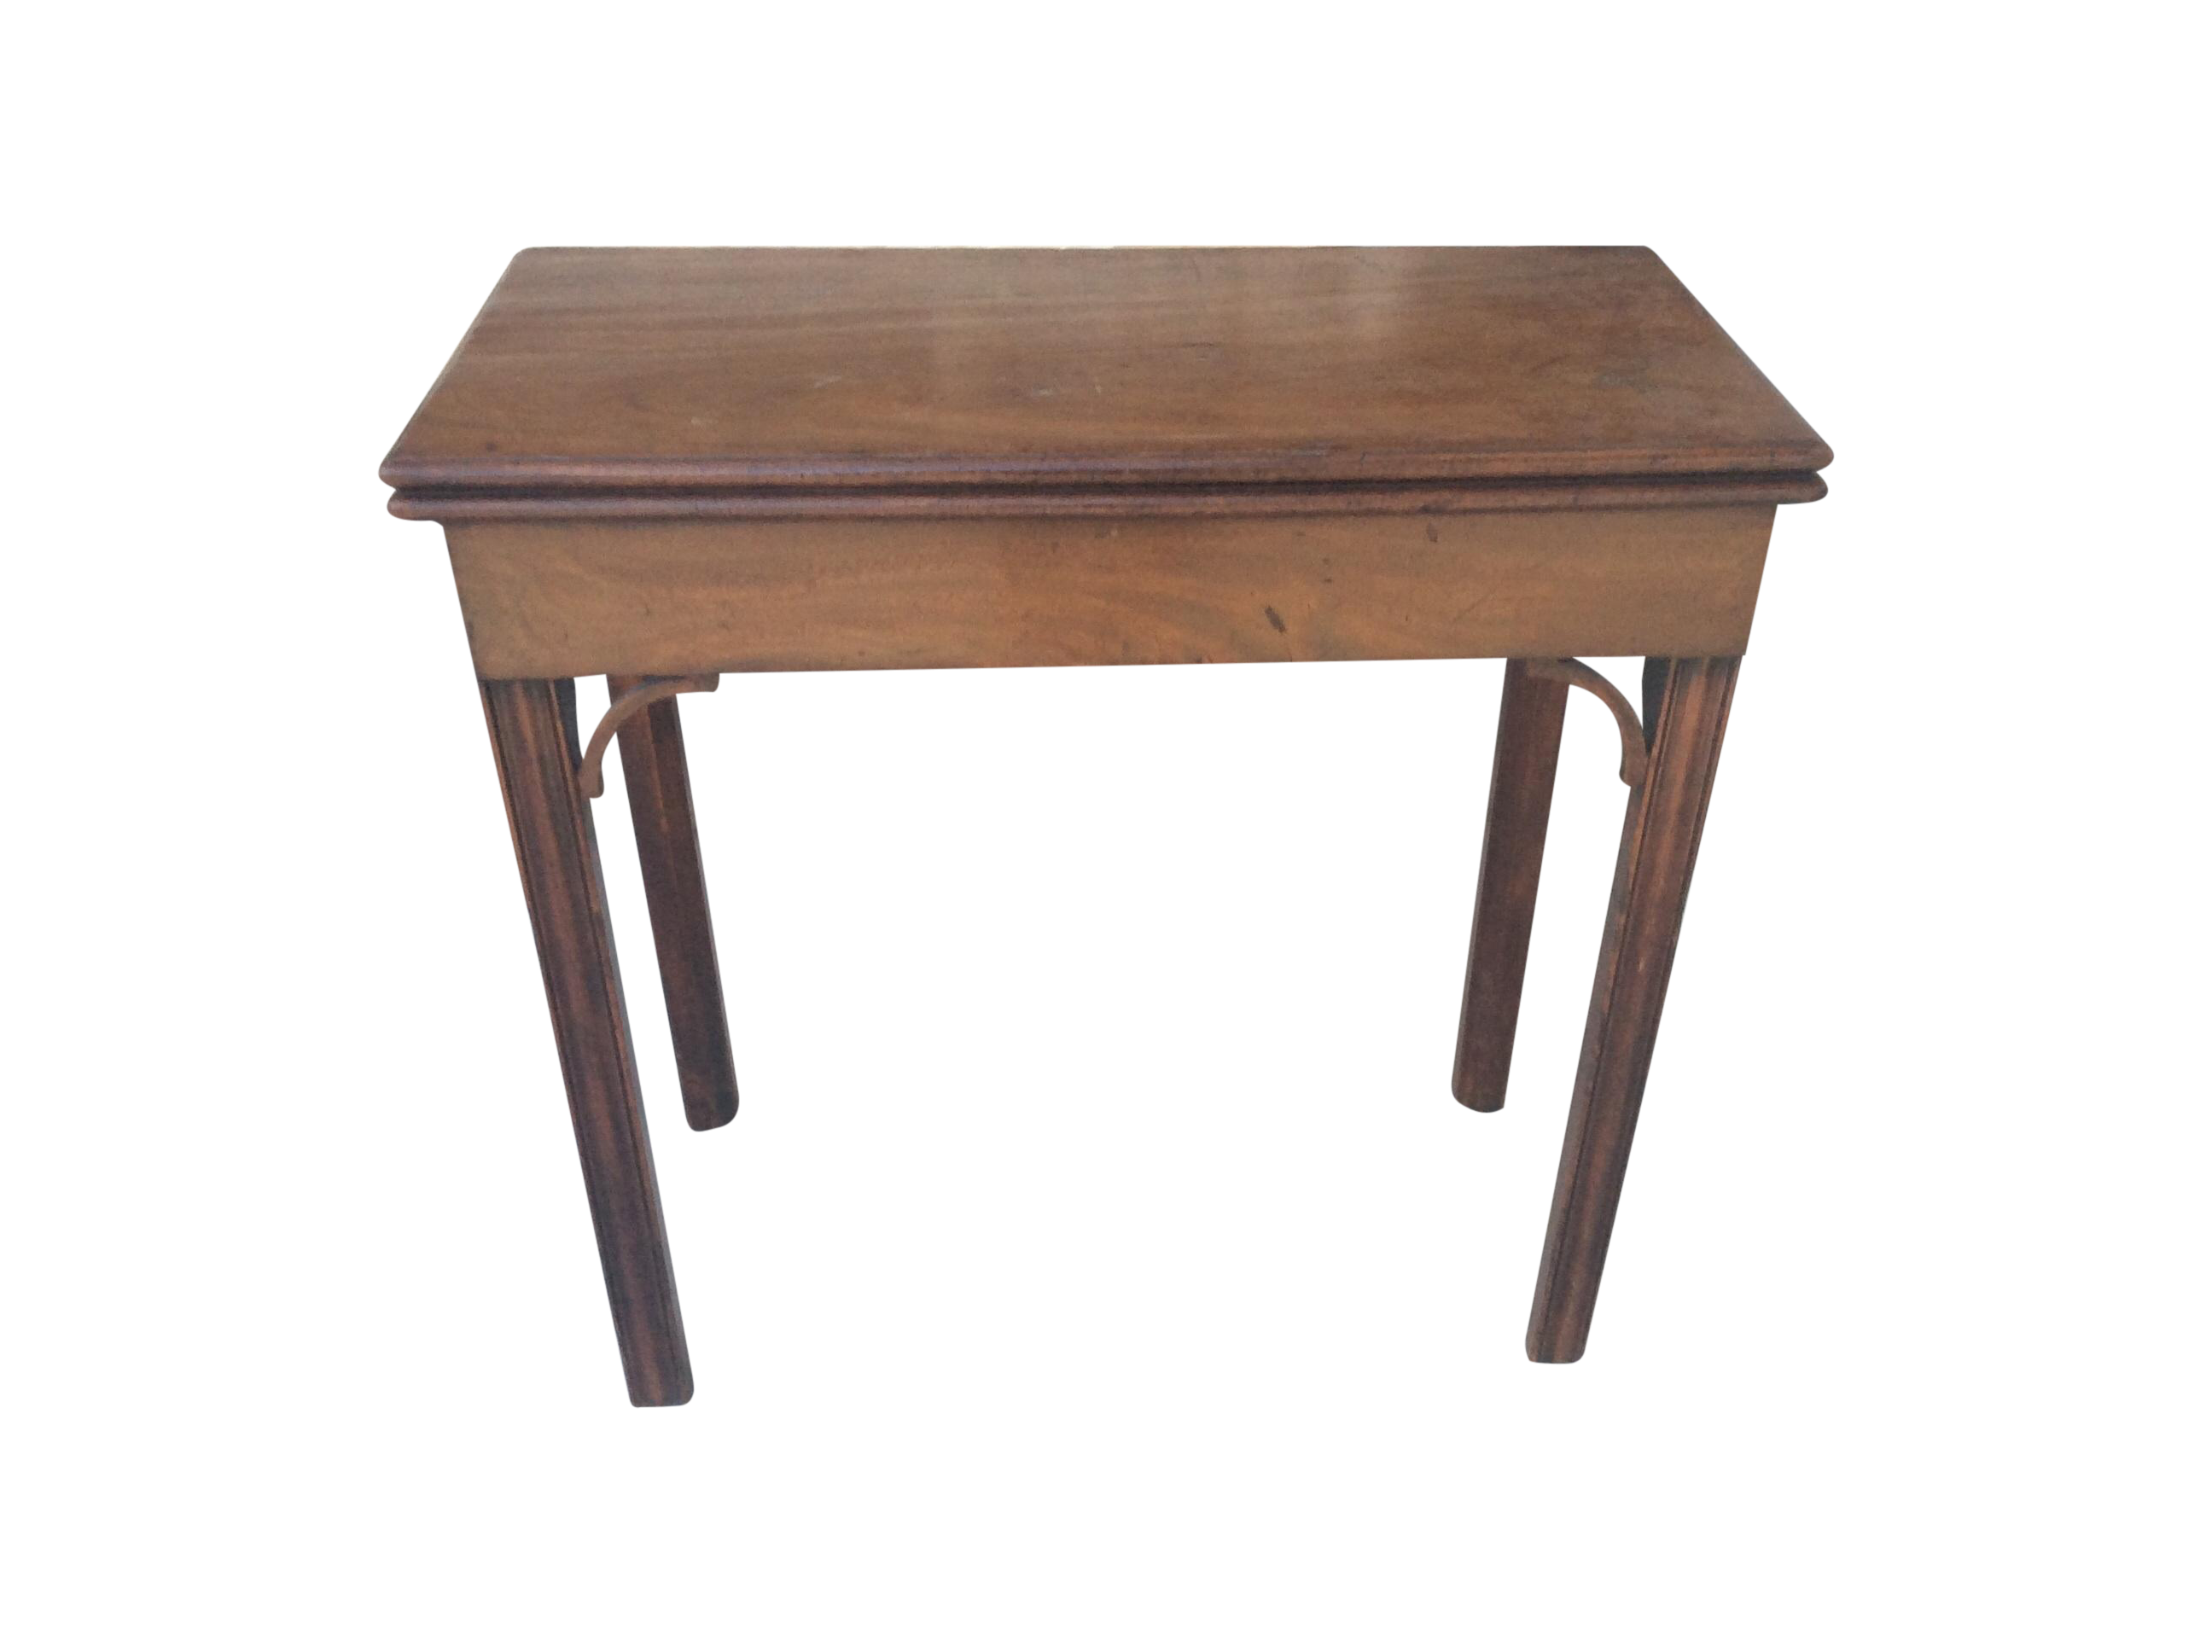 Flip top side table - Image Of Antique English Mahogany Flip Top Side Table